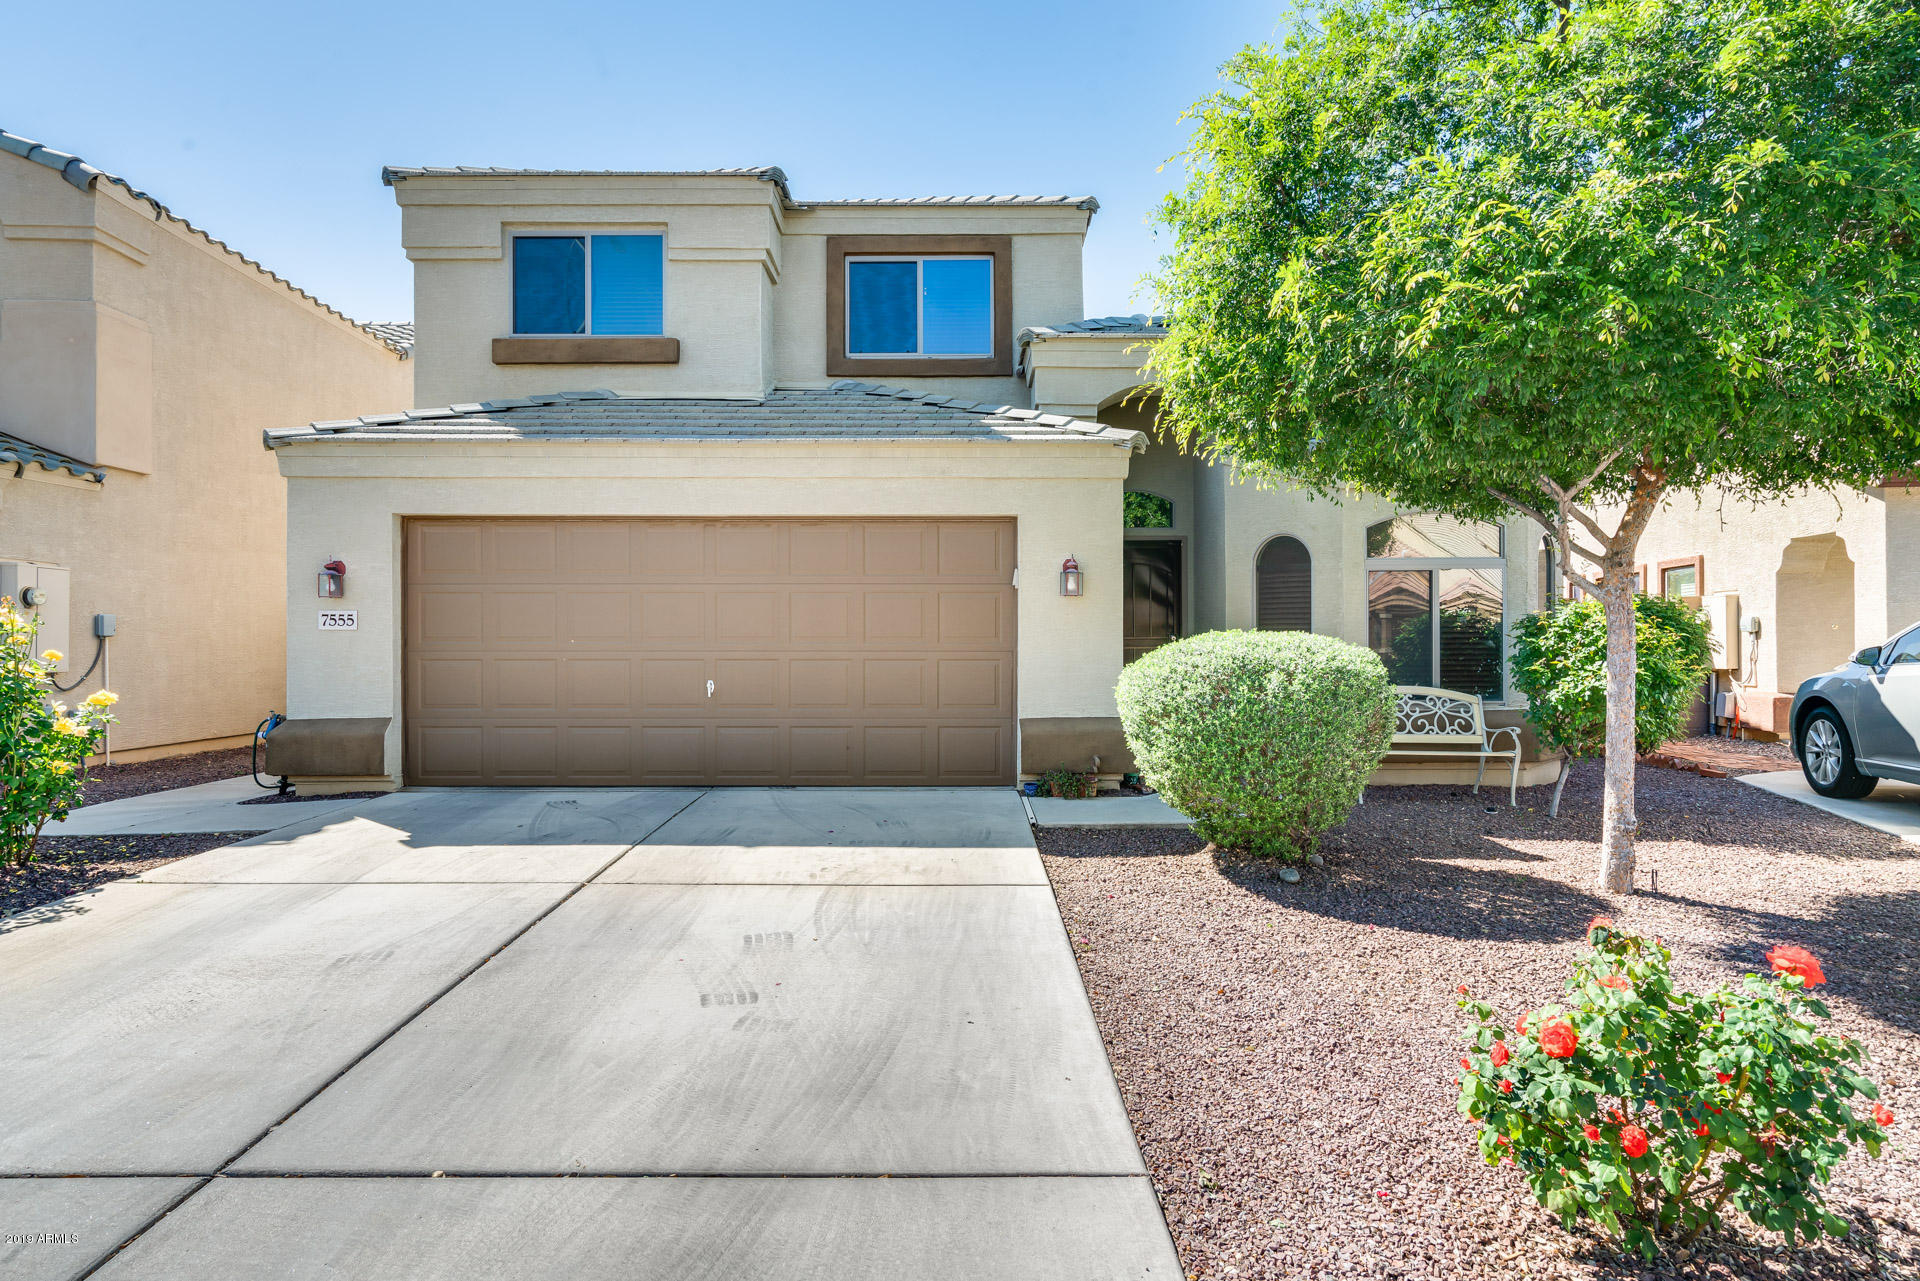 7555 W CHARTER OAK Road, Peoria in Maricopa County, AZ 85381 Home for Sale